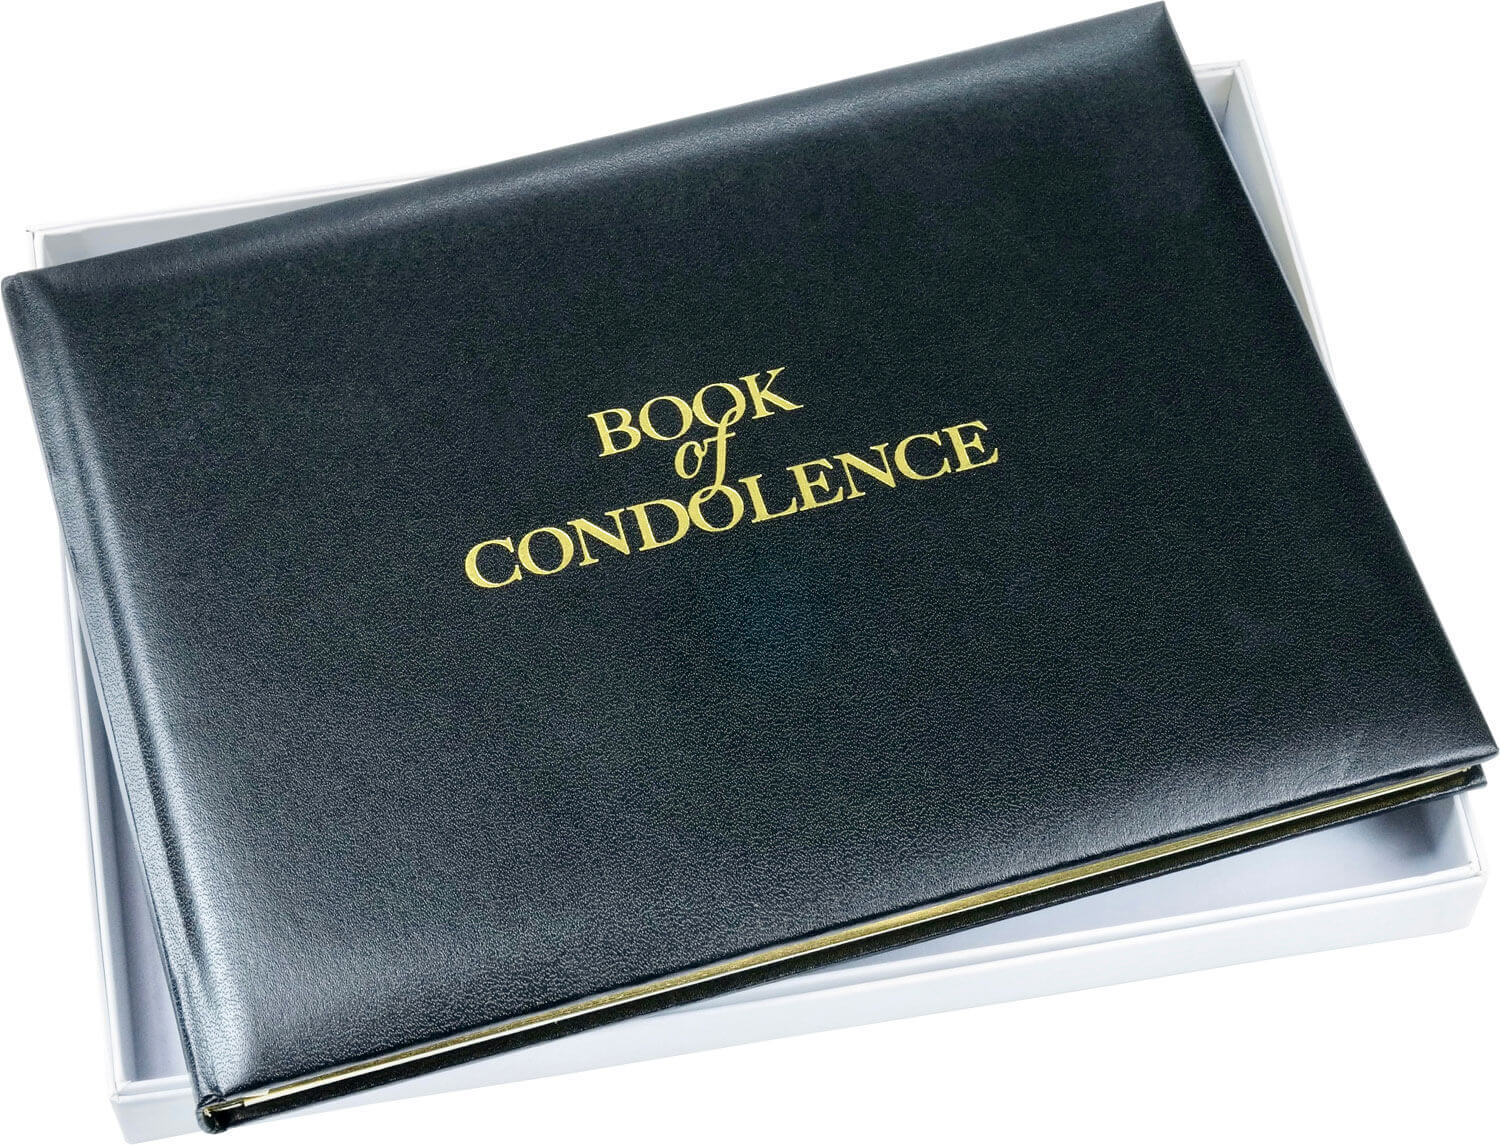 Esposti Book of Condolence - Open Format - Inside Back Cover Pocket for Cards - Presentation Boxed - Black - Size 265 x 195mm